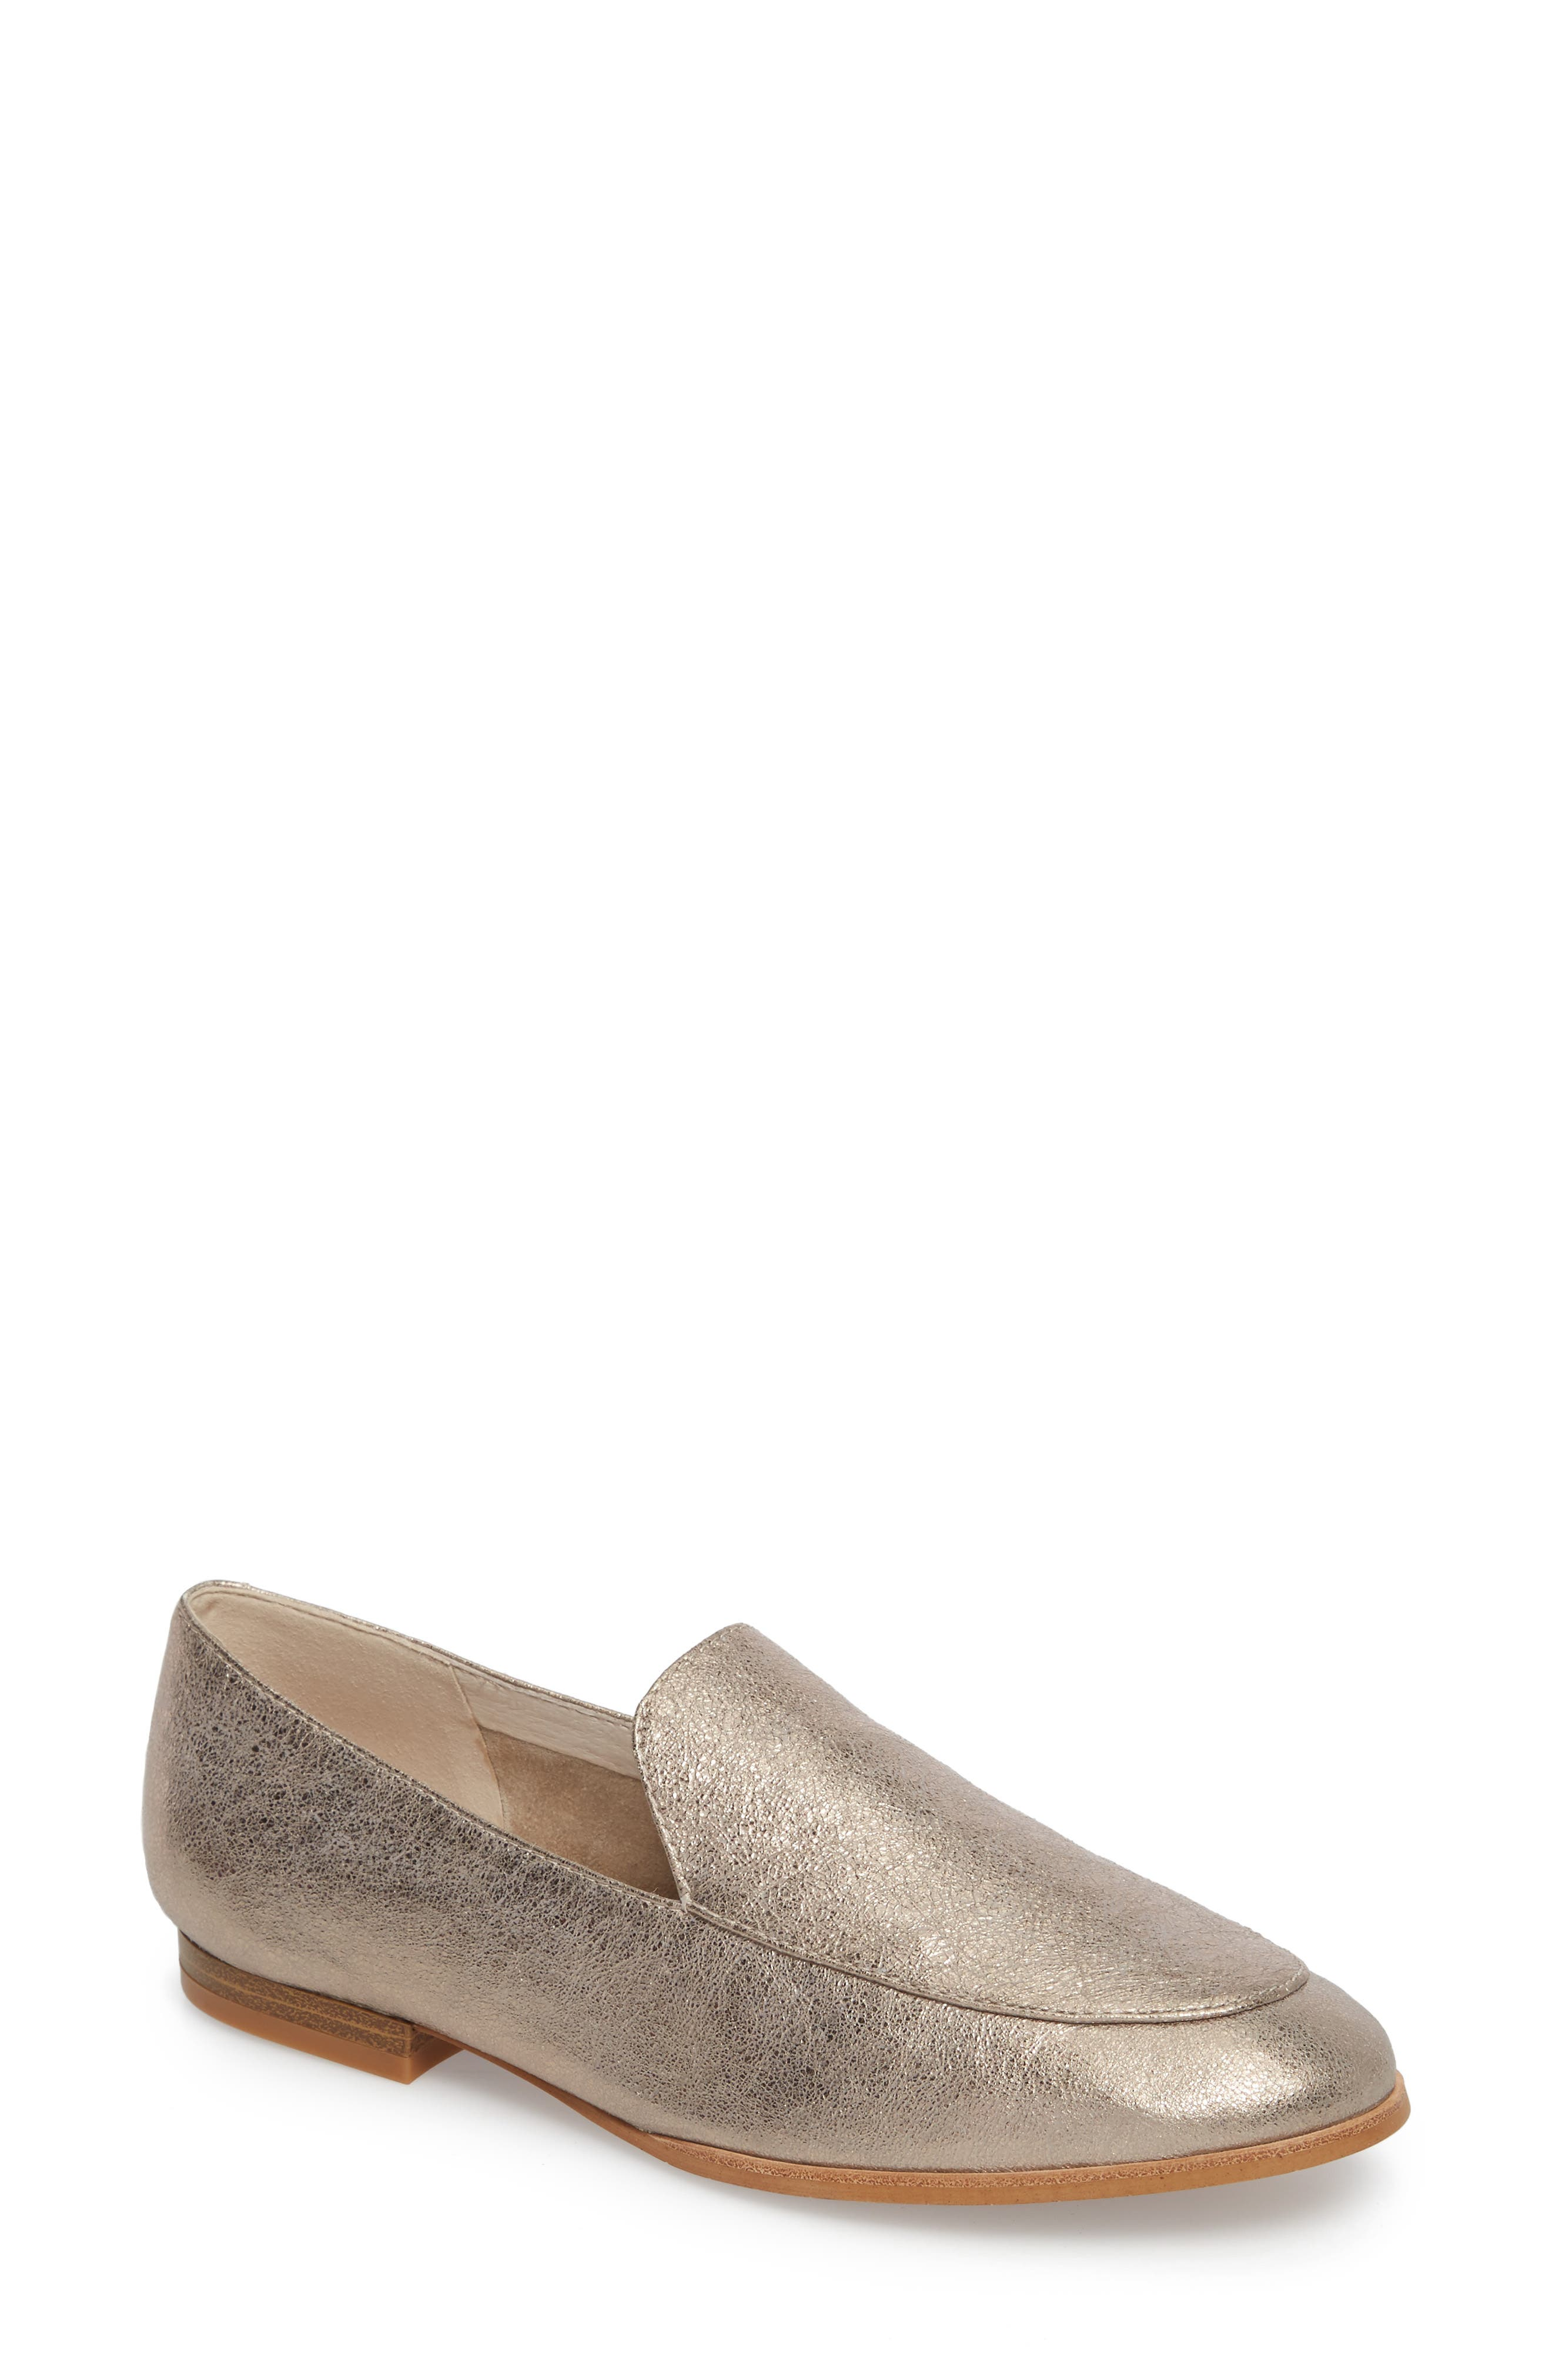 Main Image - Kenneth Cole New York Westley Welt Loafer (Women)